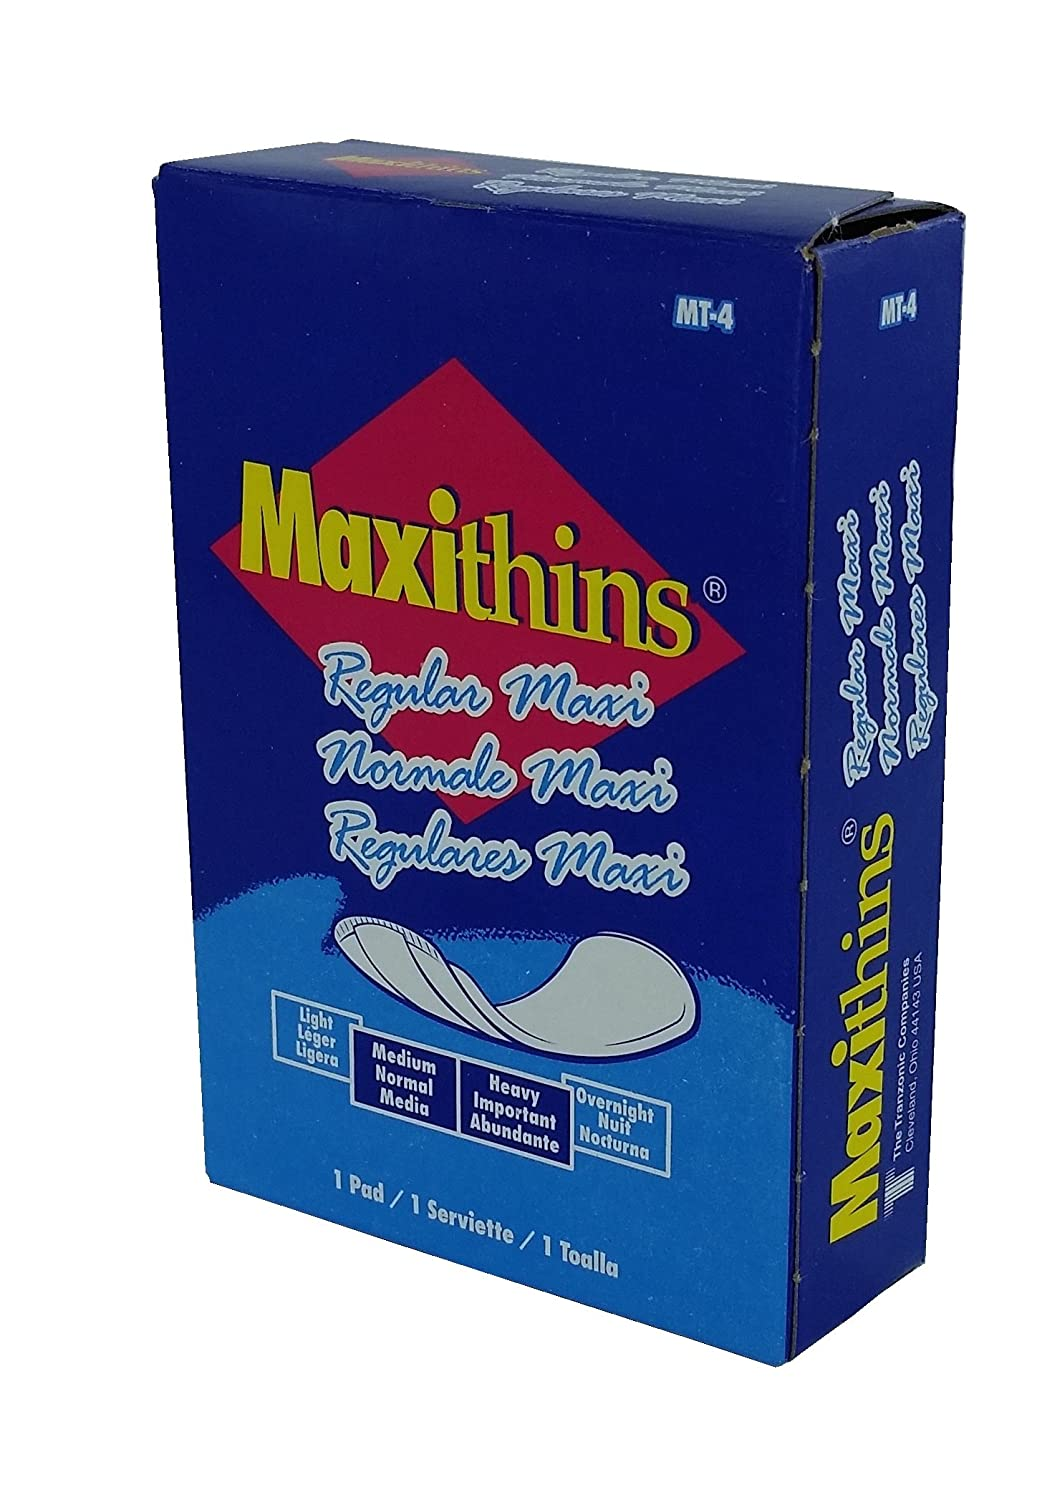 Maxithins Pad 10 Pack Individually Boxed Pad: Disposable Sanitary Napkins: Amazon.com: Industrial & Scientific